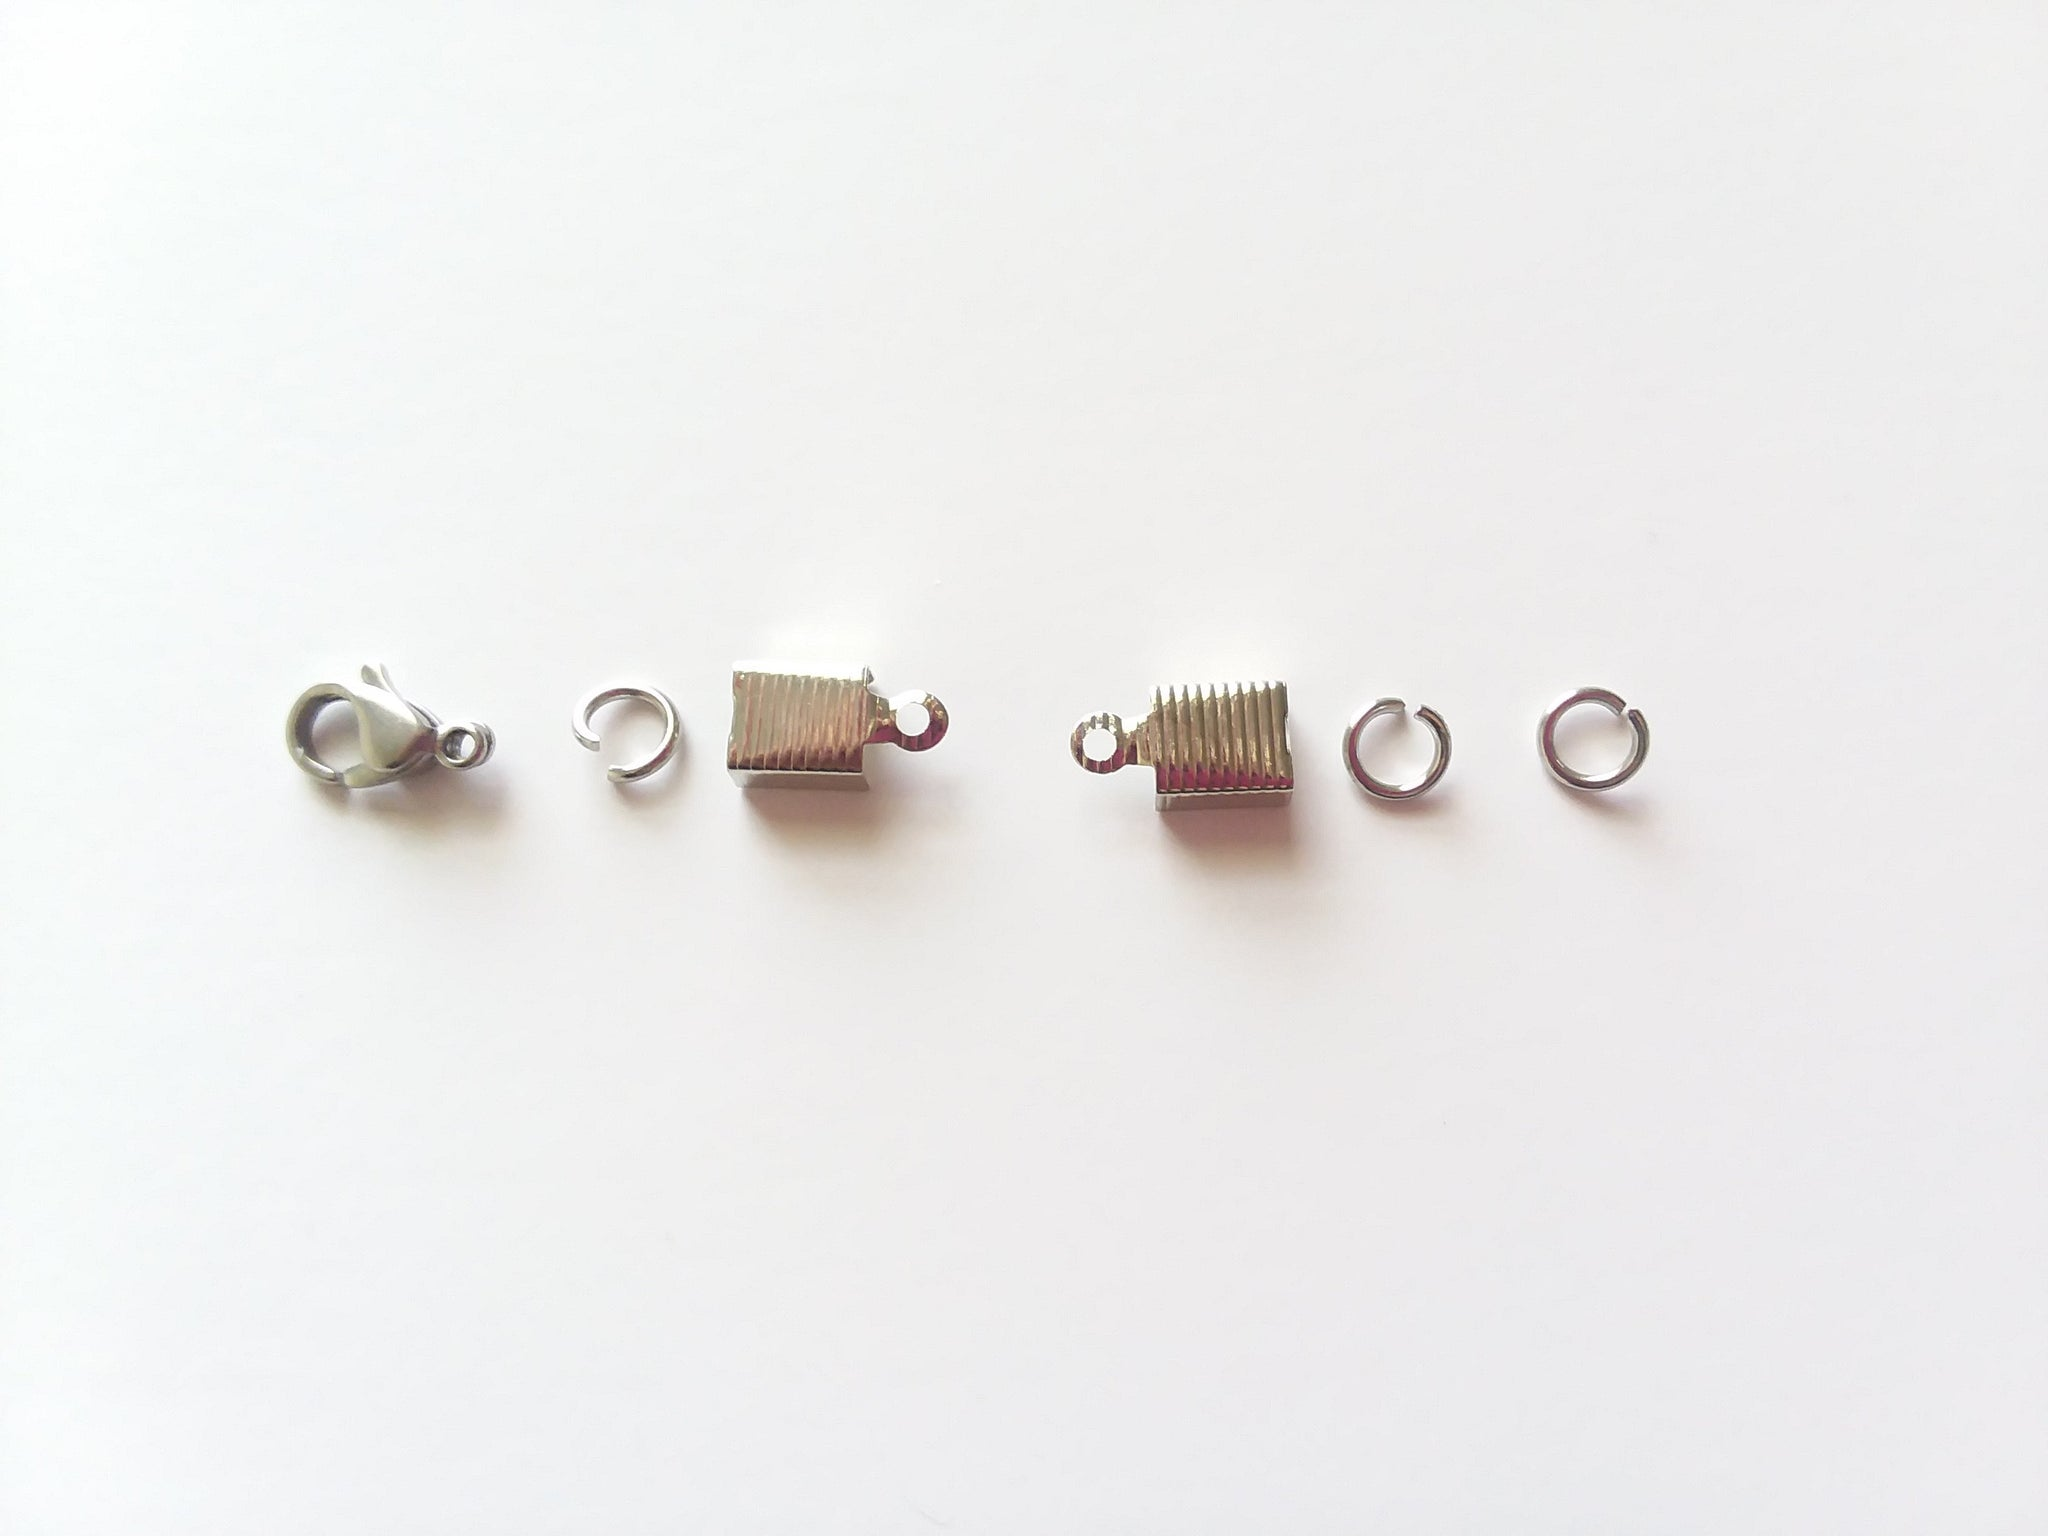 Set of Stainless Steel Findings for Making 12 Bib or Pendant Necklaces